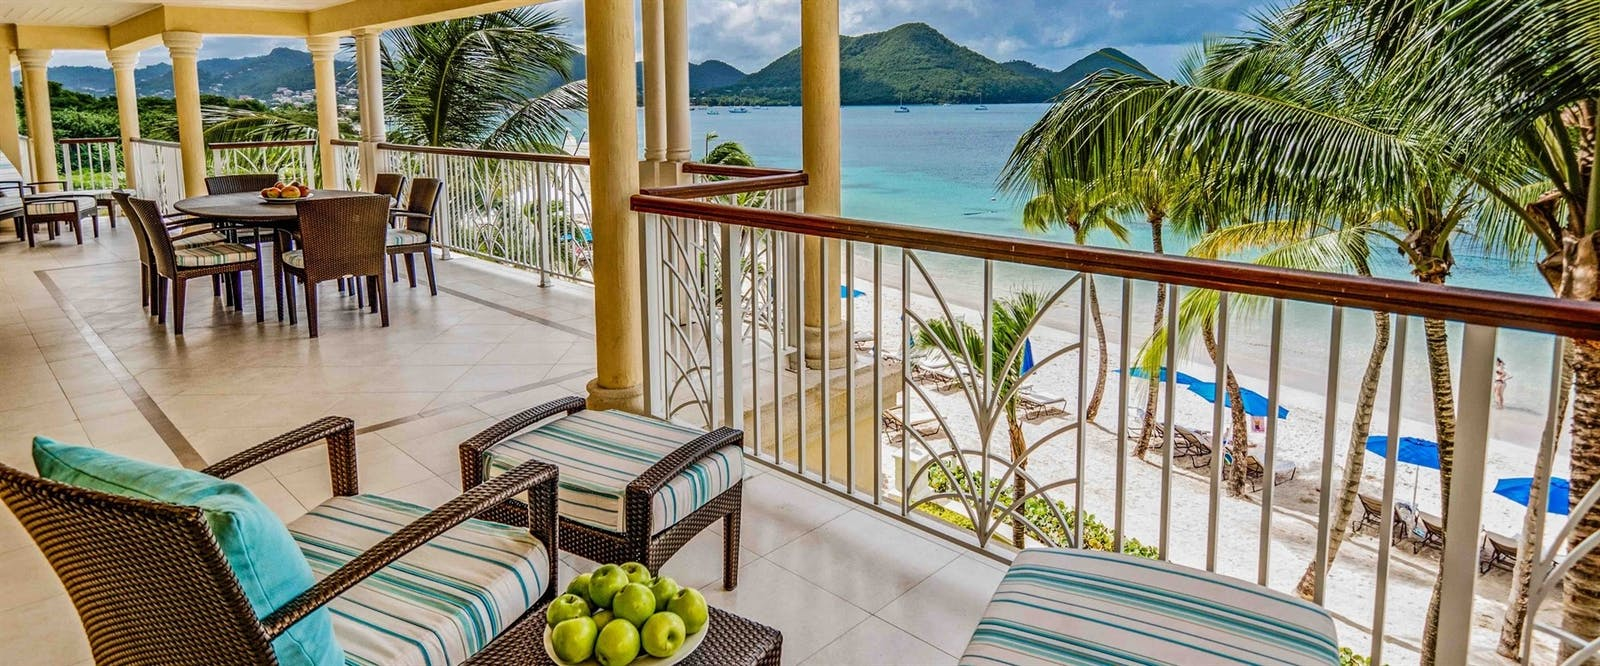 Ocean Front Terrace at The Landings Resort and Spa by Elegant Hotels, St Lucia